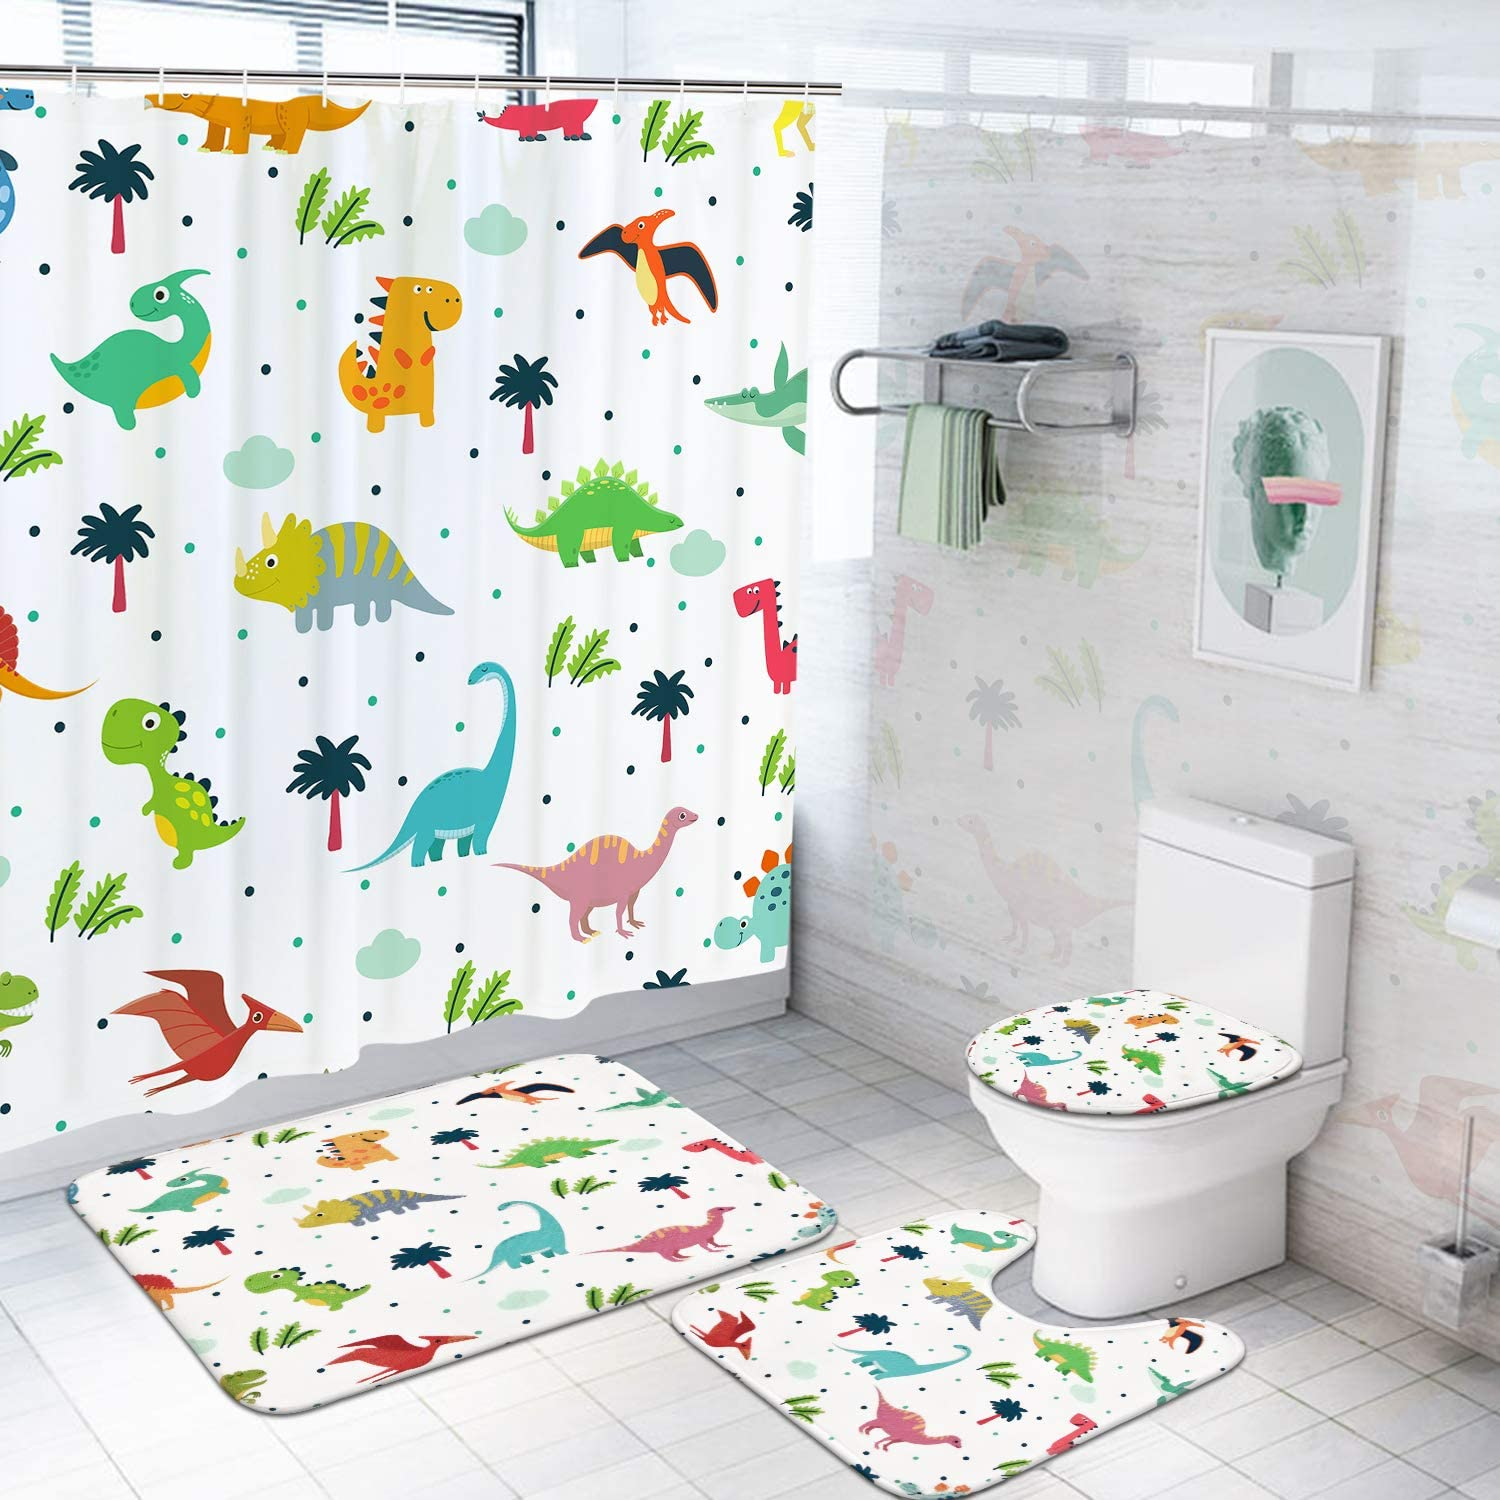 4Pcs Cartoon Dinosaurs Shower Curtain Set with Non-Slip Rugs Toilet Lid Cover and Bath Mat Colorful Cute Dinosaurs Bath Curtain with 12 Hooks Durable Waterproof Fabric Shower Curtain for Kids